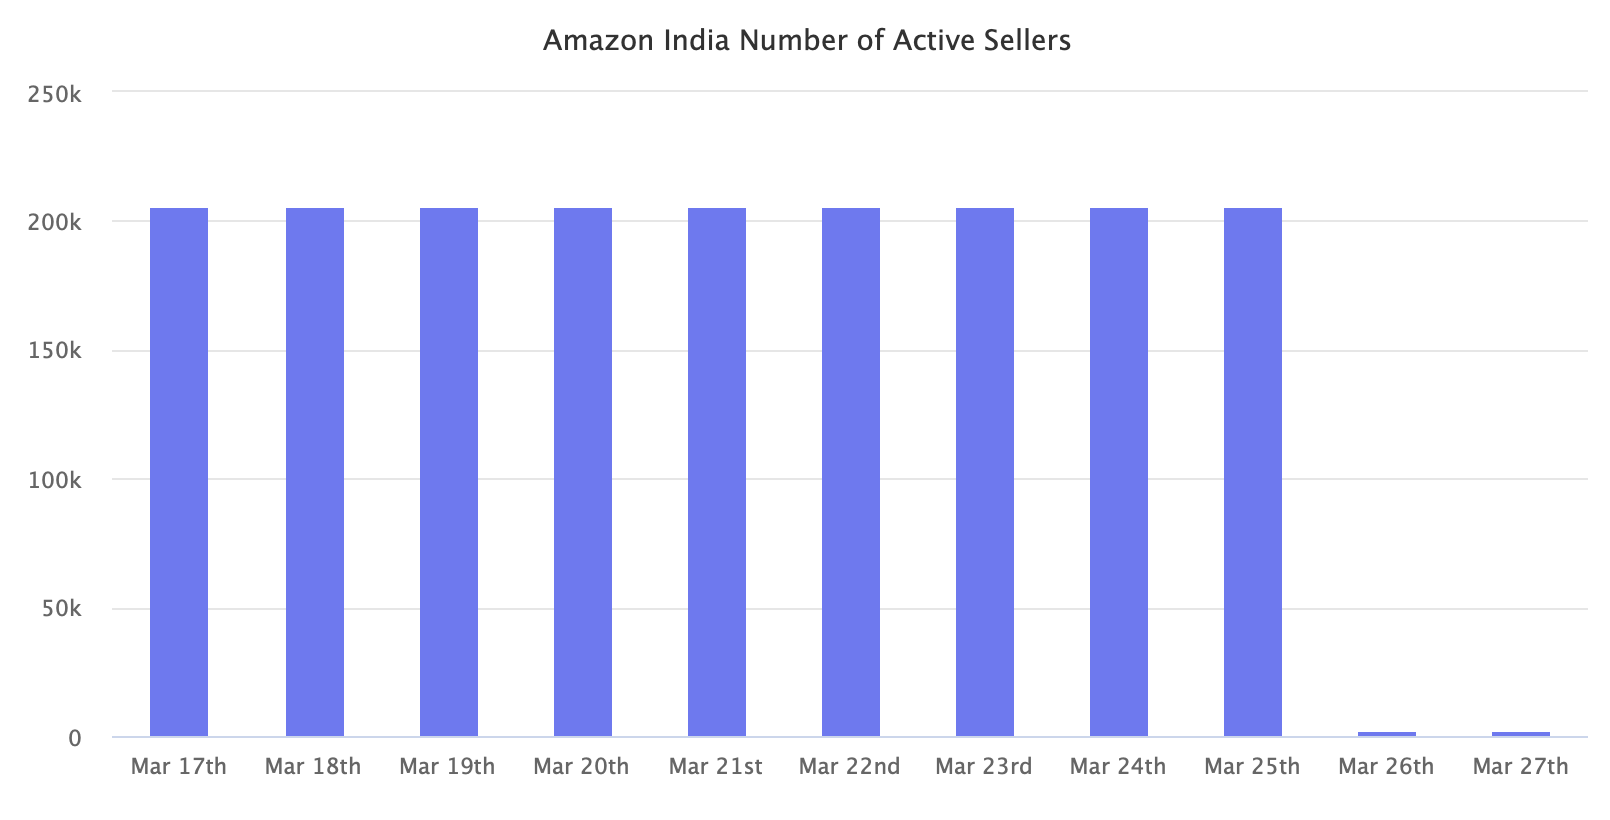 Amazon India Number of Active Sellers